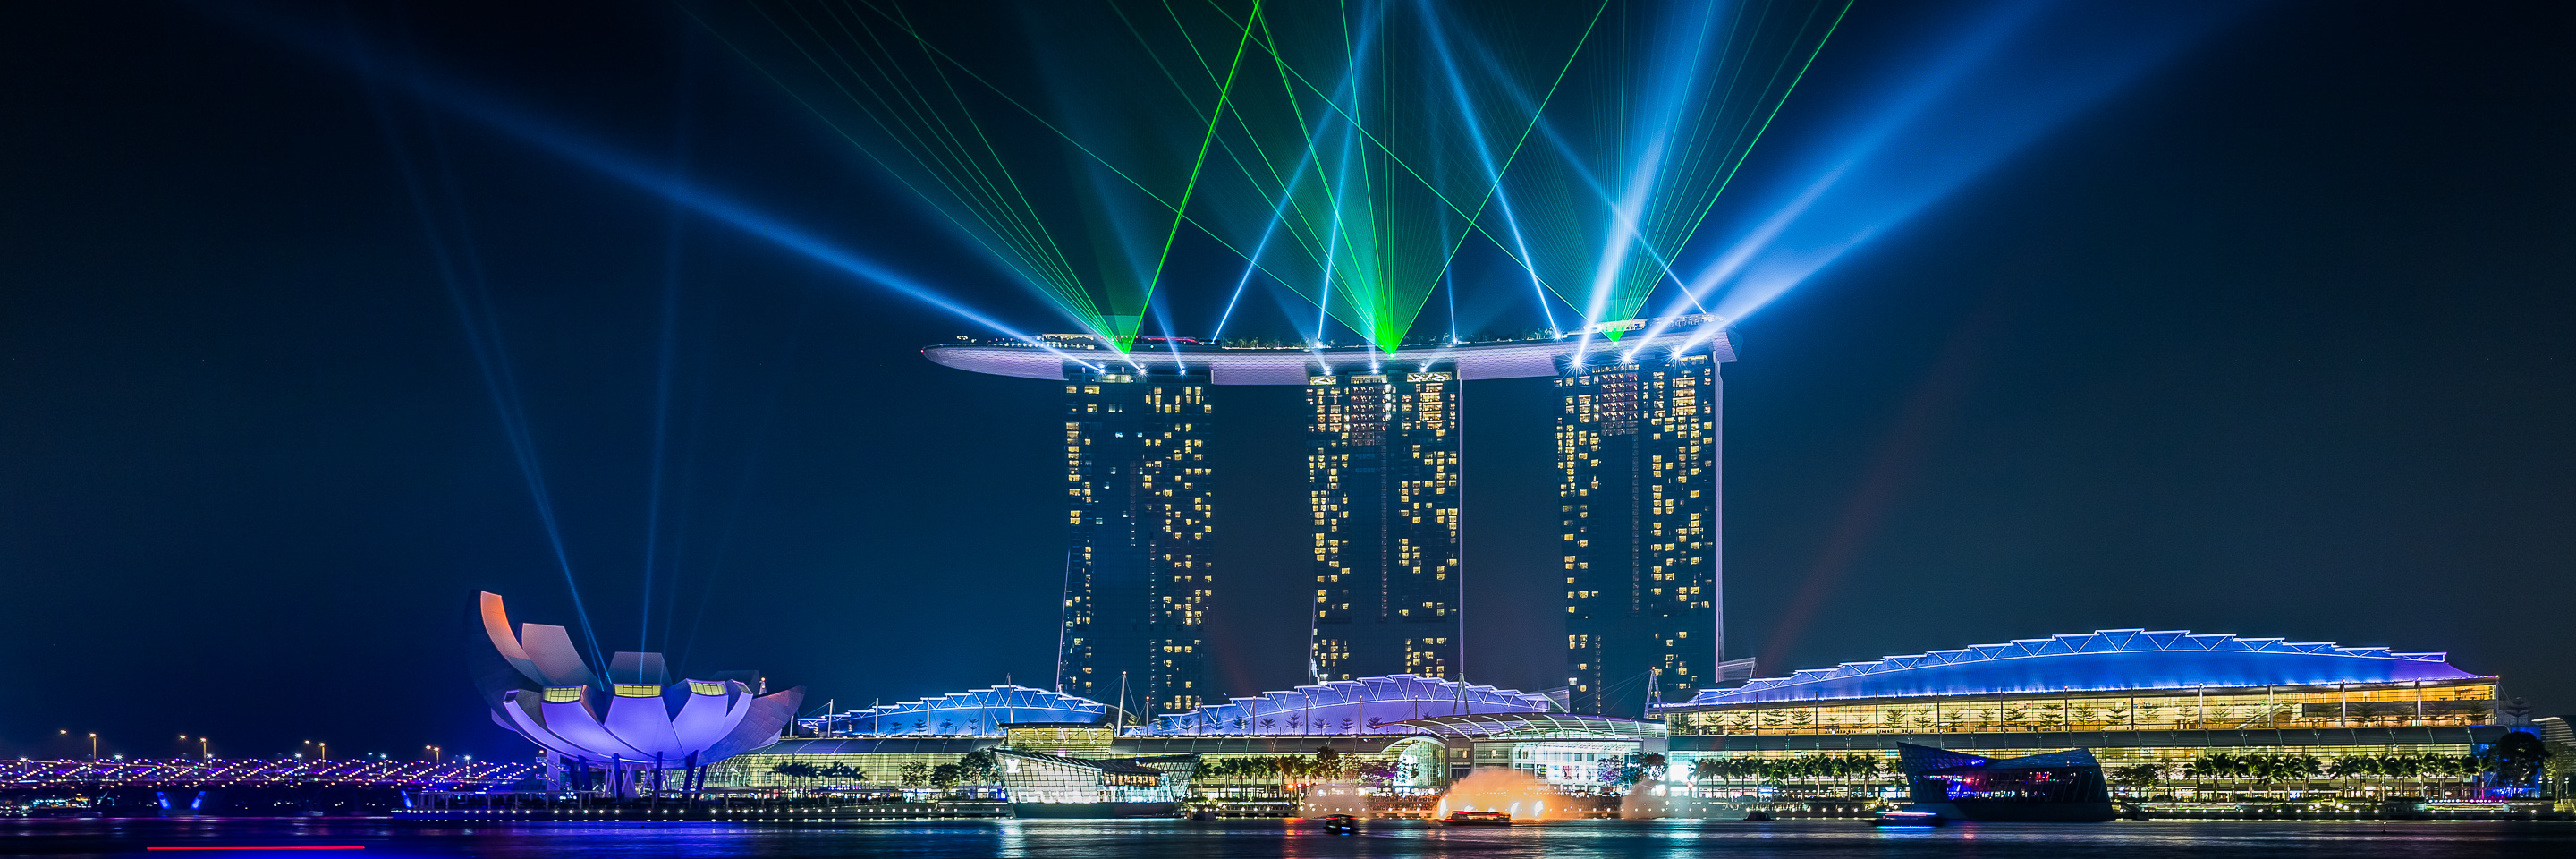 Singapore Marina Bay Sands with Laser show